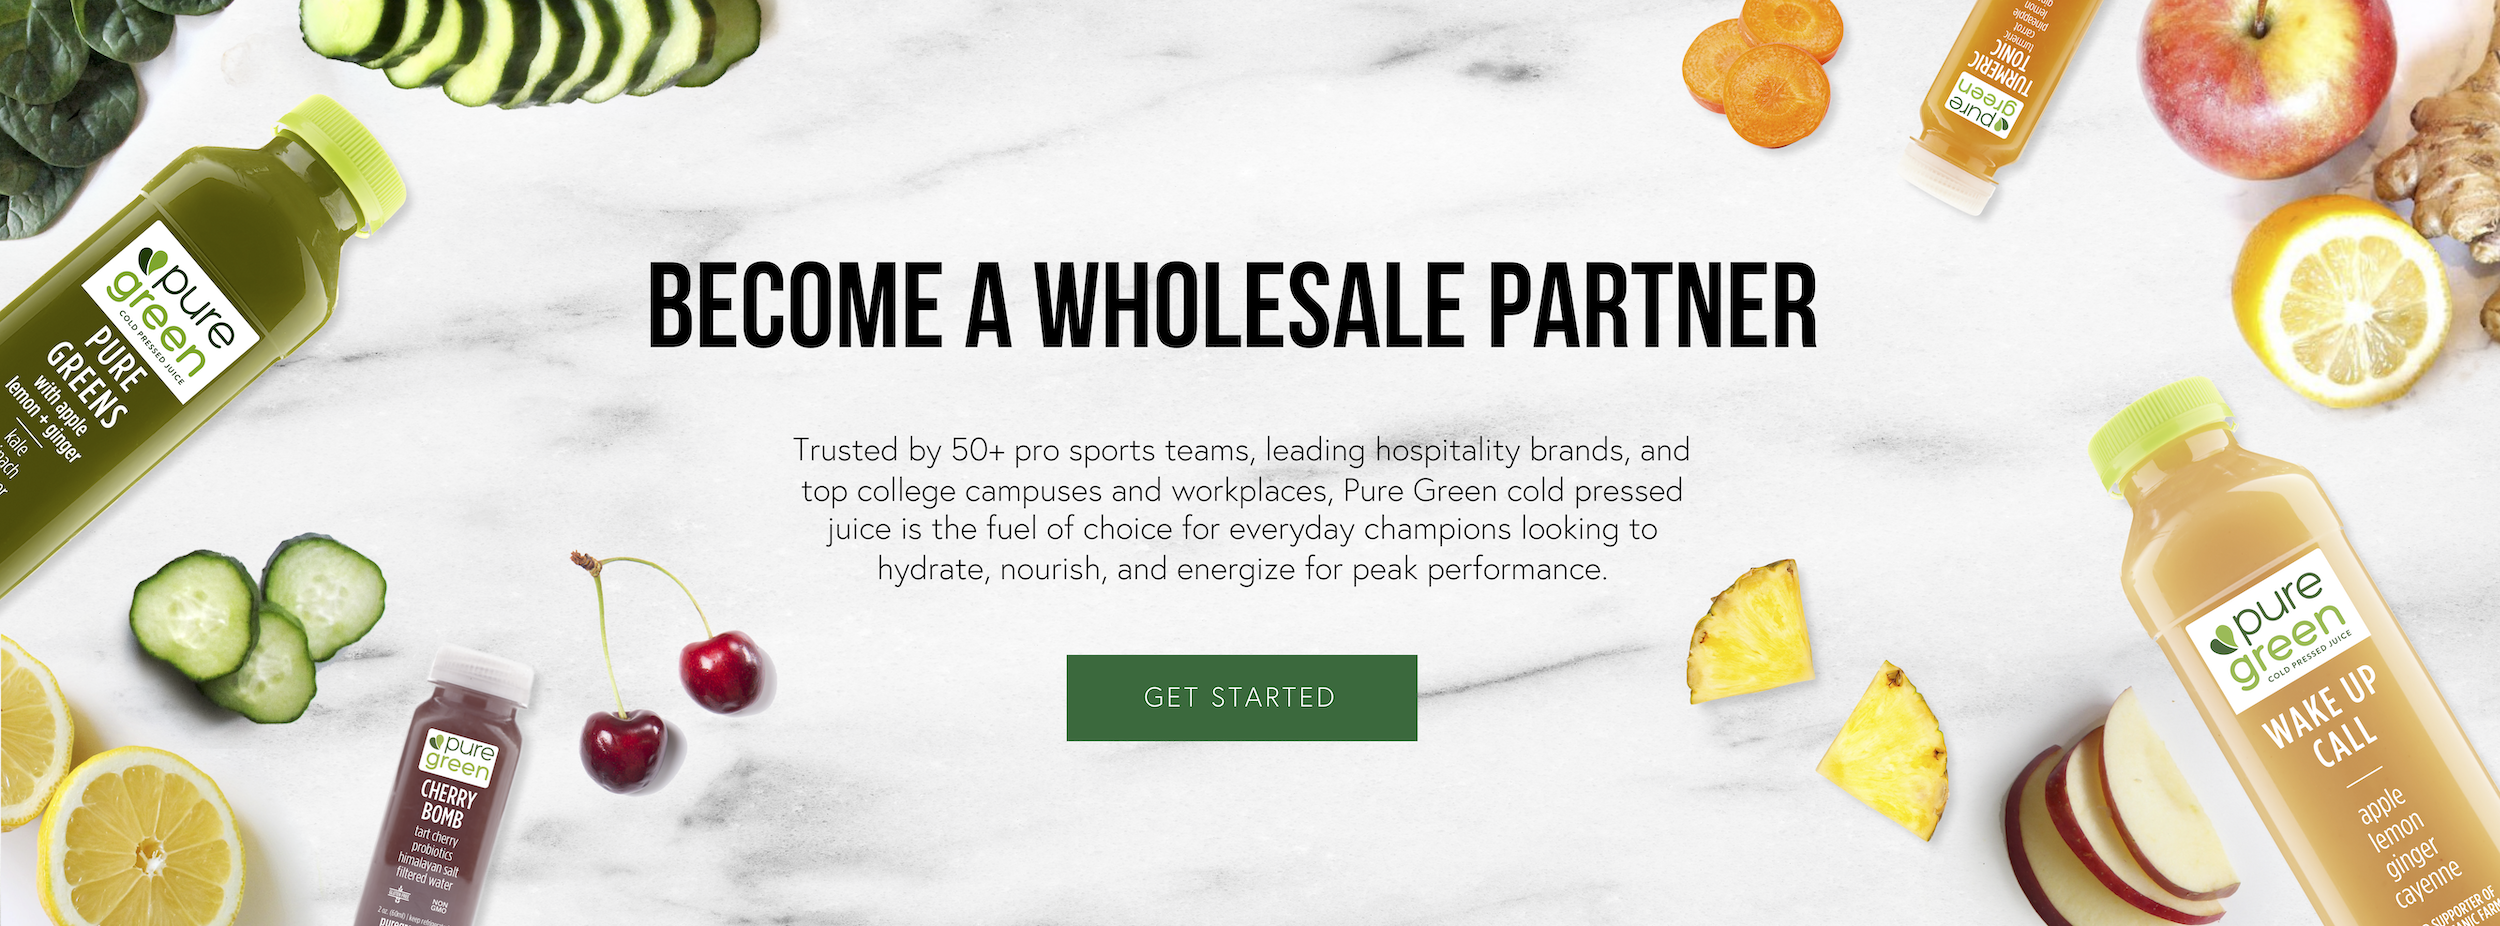 Wholesale Landing Page Cover Image - v1MP with text.png